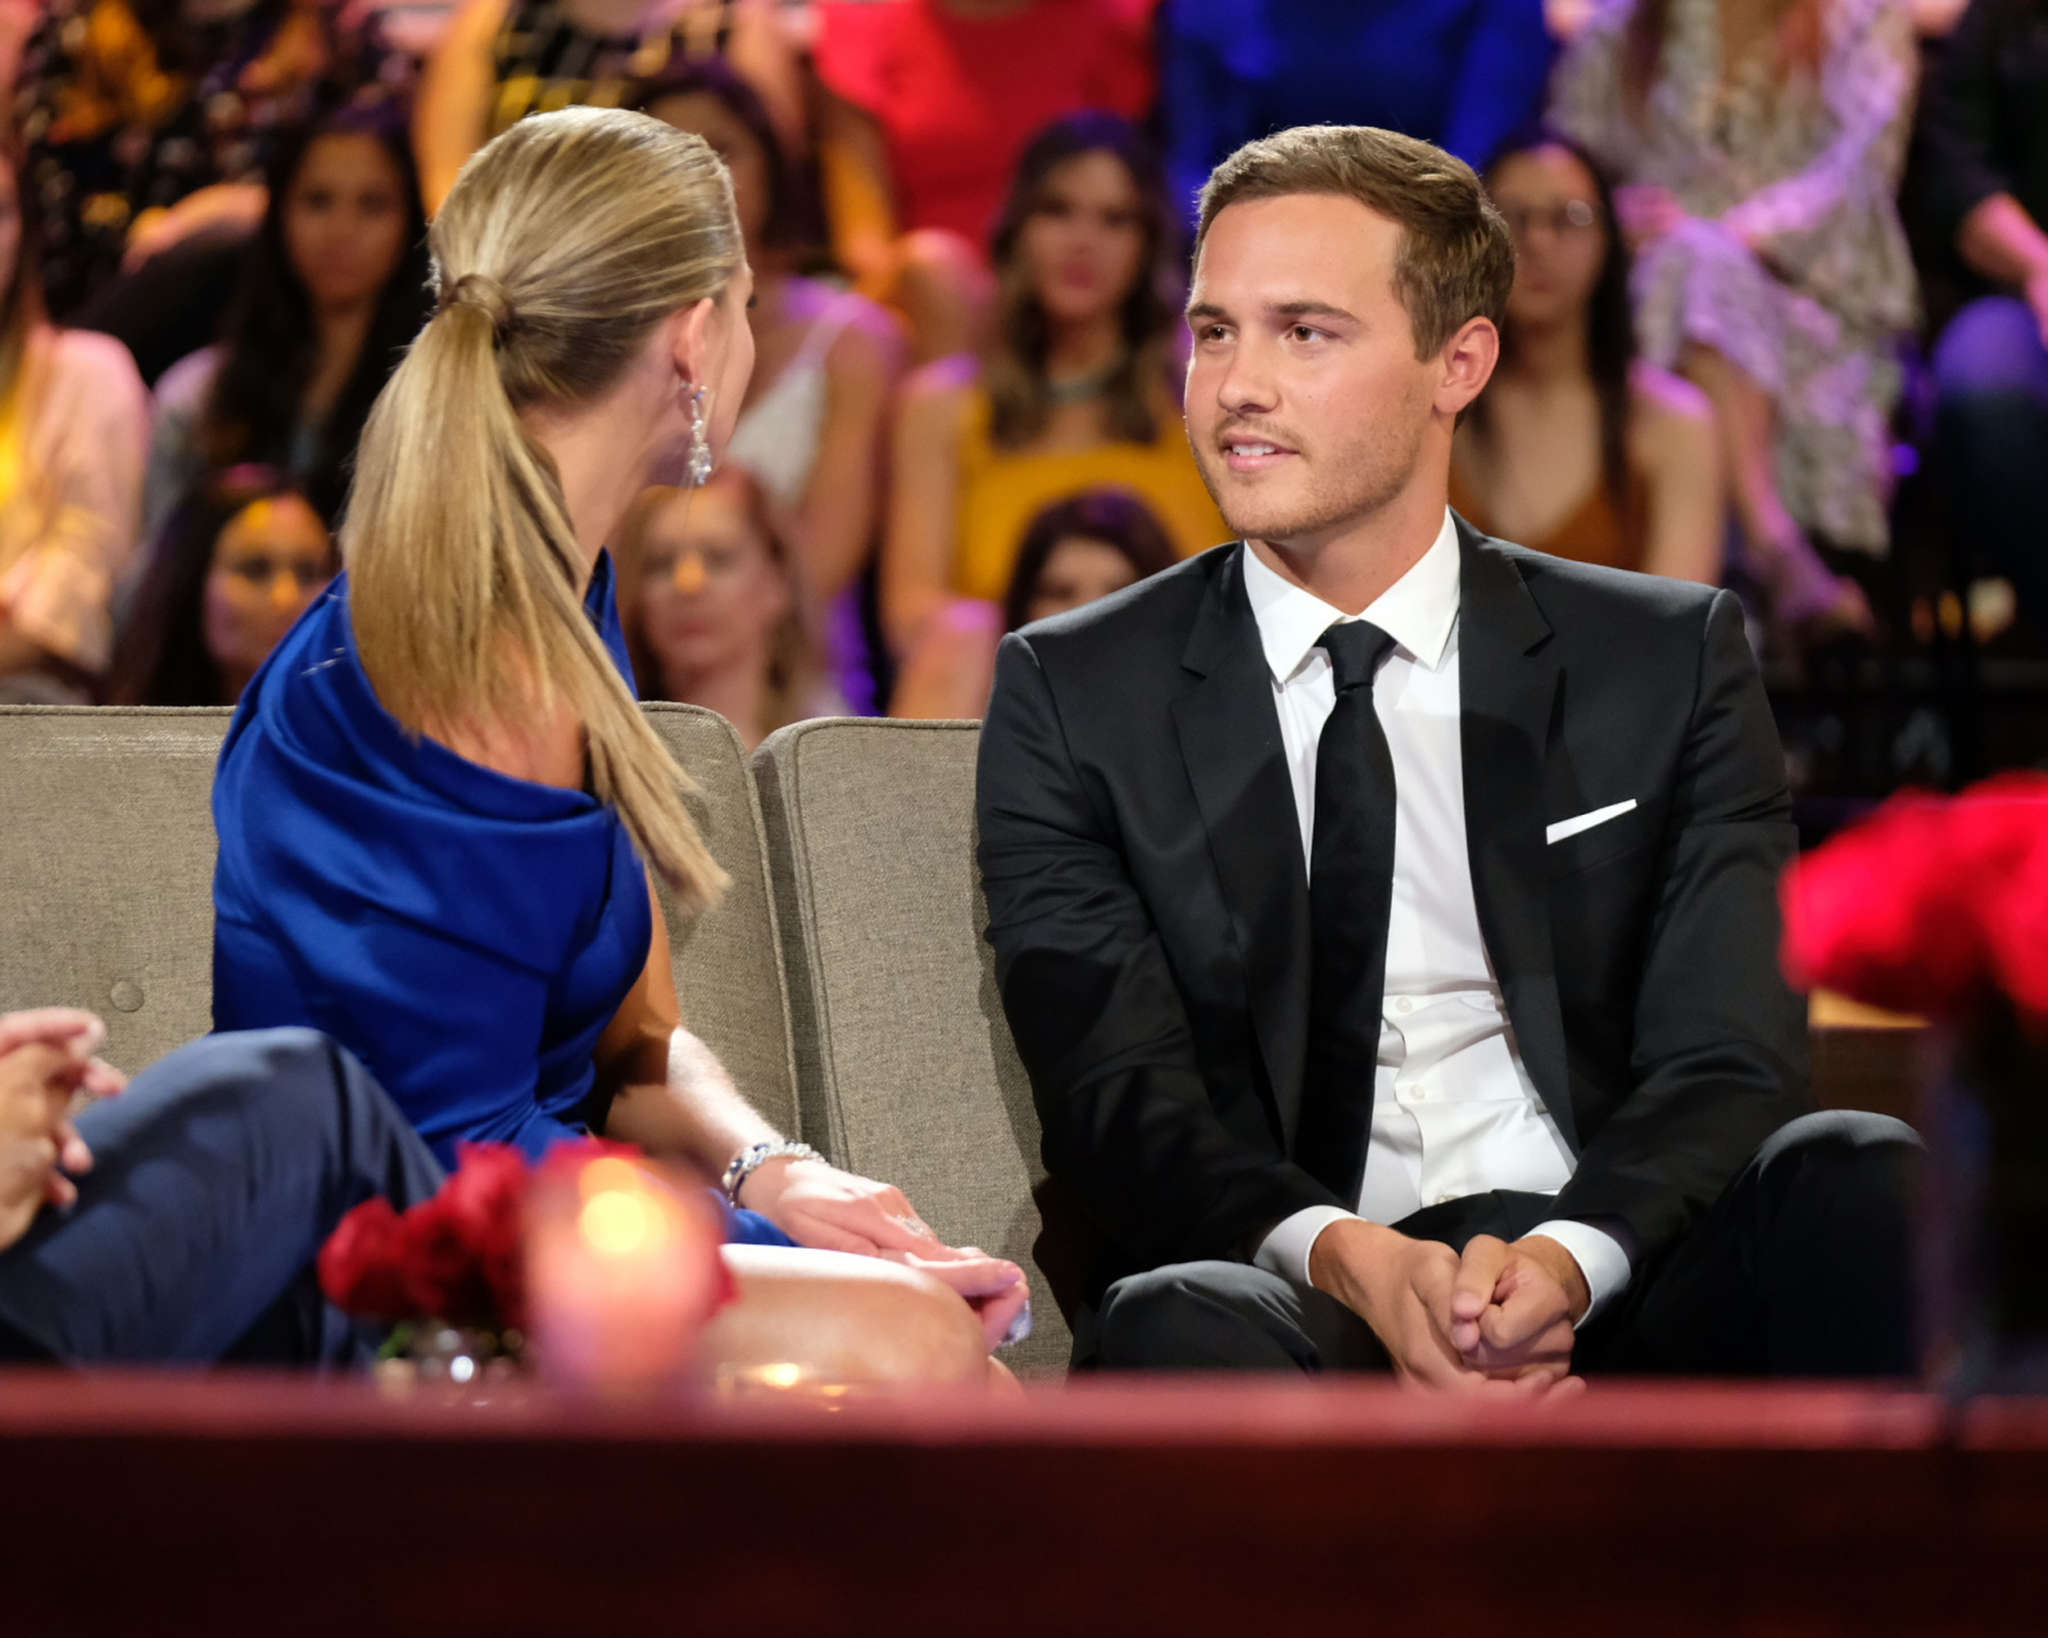 What The Bachelor Star Peter Weber Learned from Hannah Brown